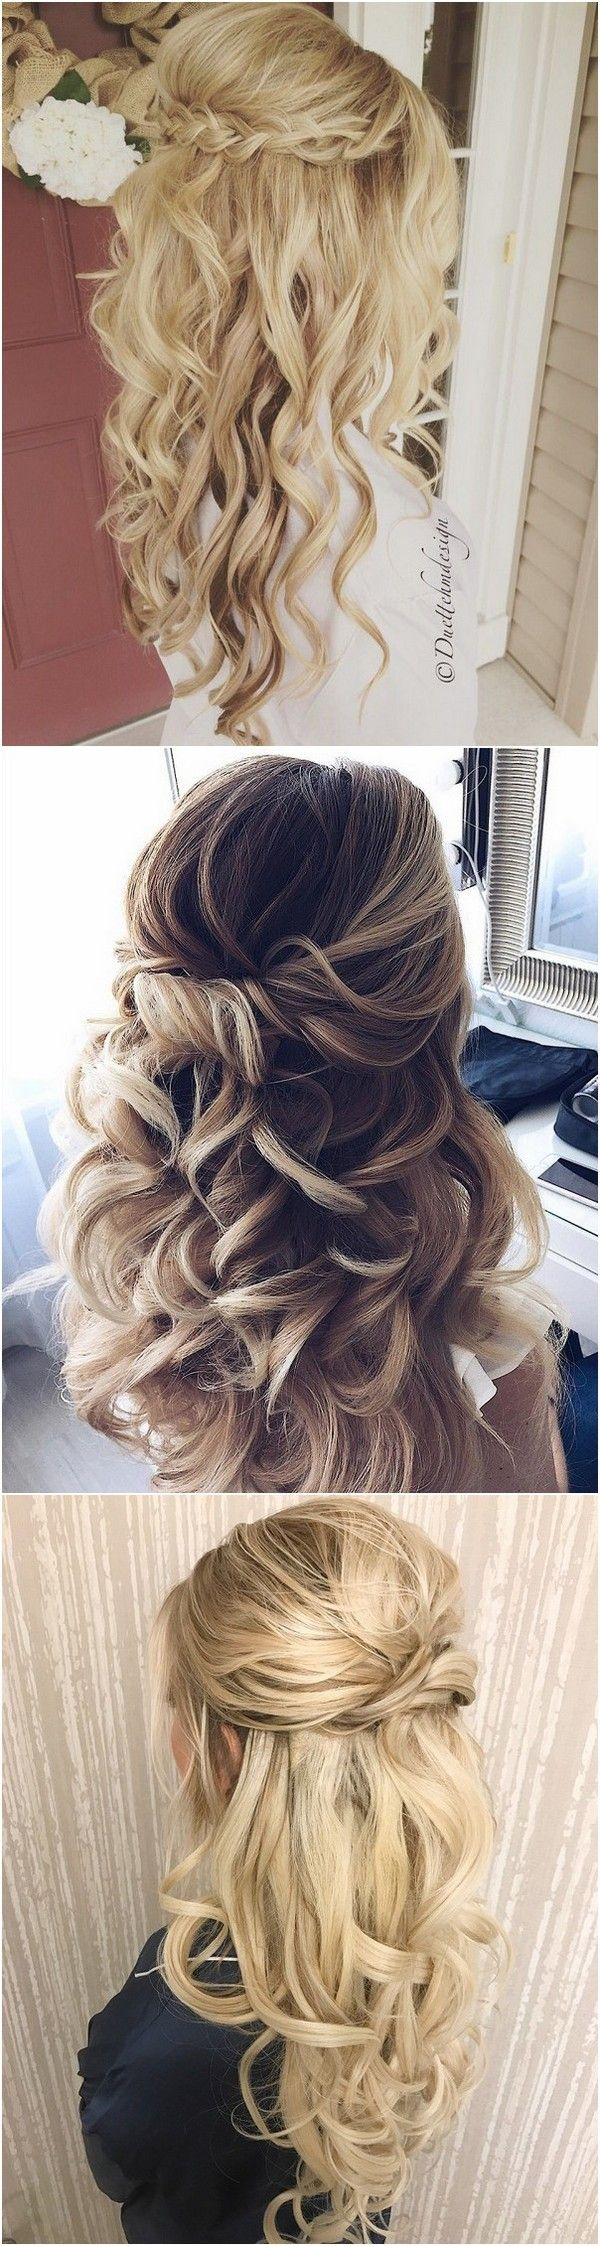 Top wedding hairstyles for trends hair ideas pinterest